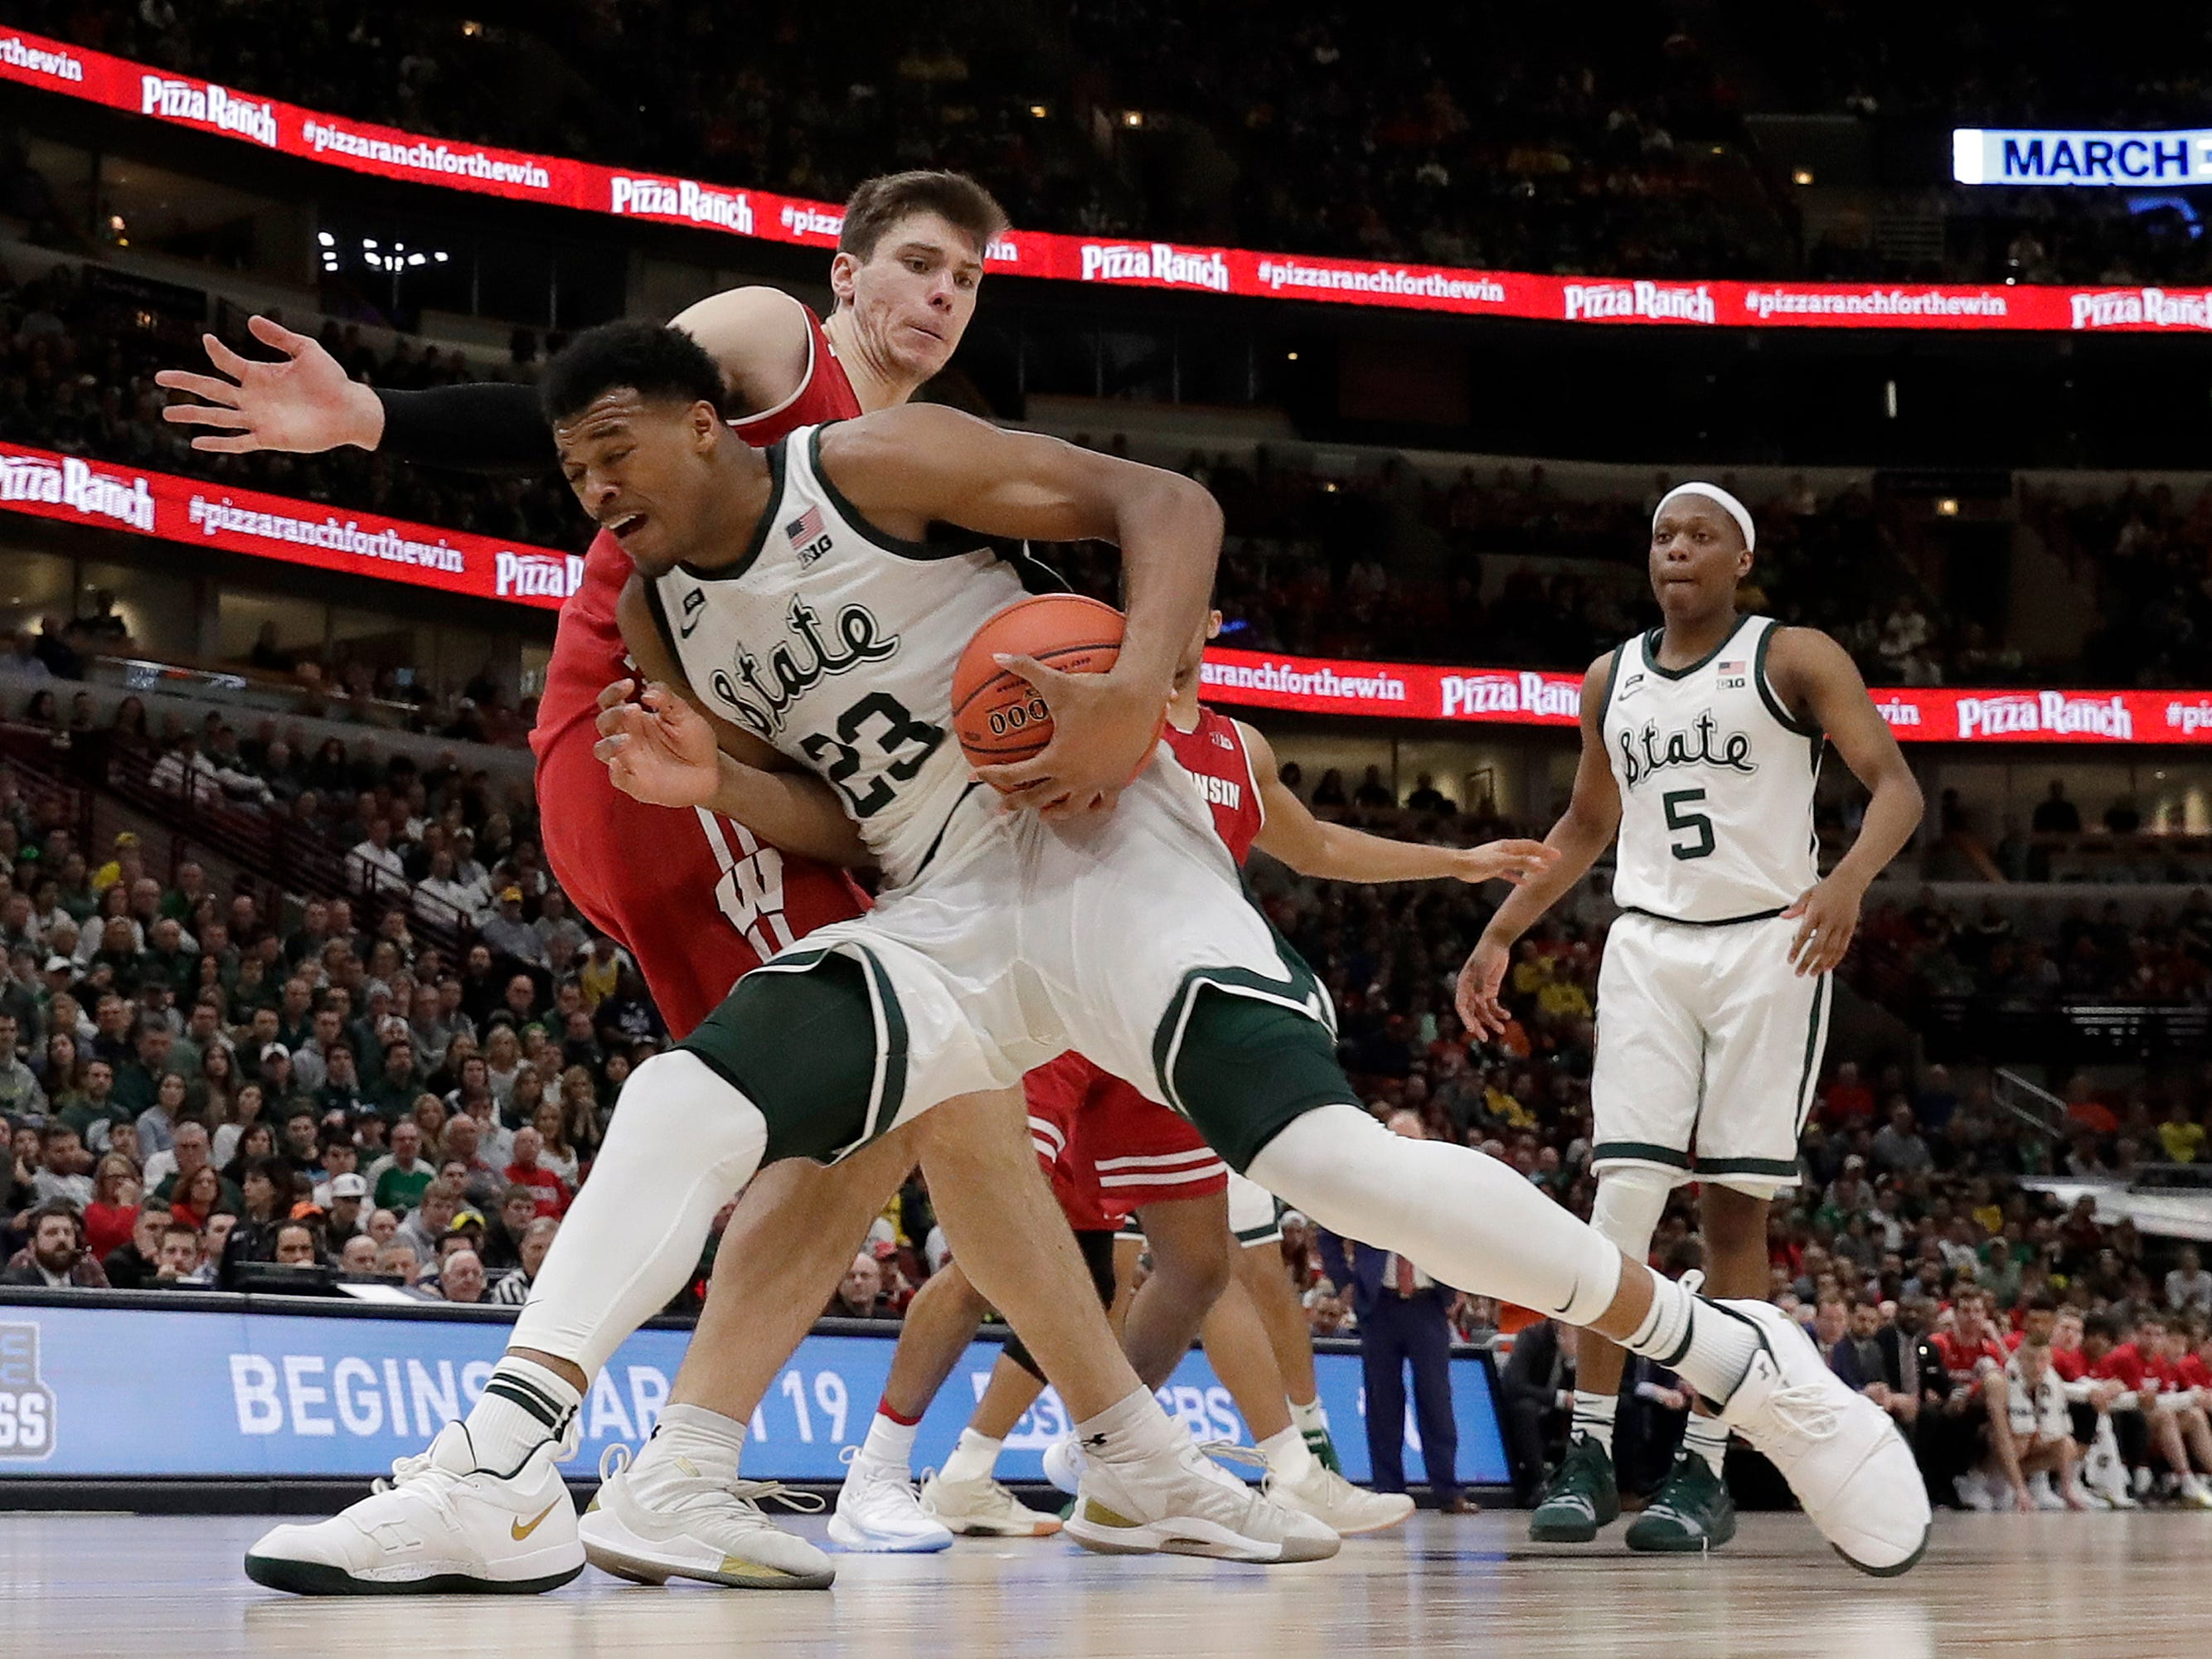 Michigan State's Xavier Tillman drives against Wisconsin's Ethan Happ during the second half.